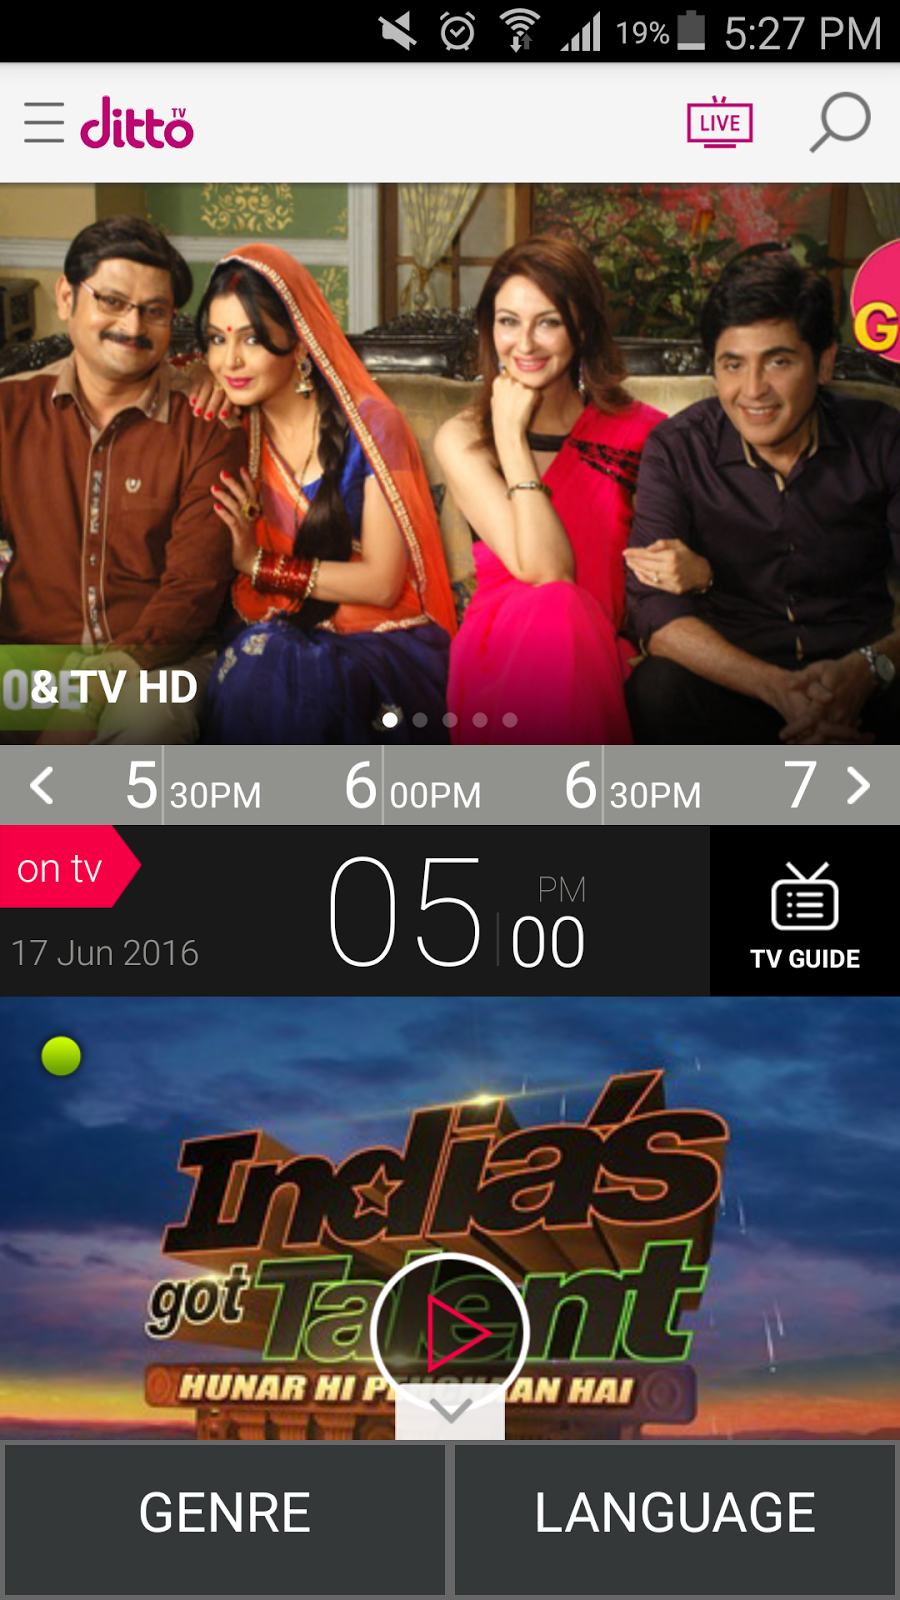 Techstuff: Watch TV On The Go With The New DittoTV At Just Rs 20